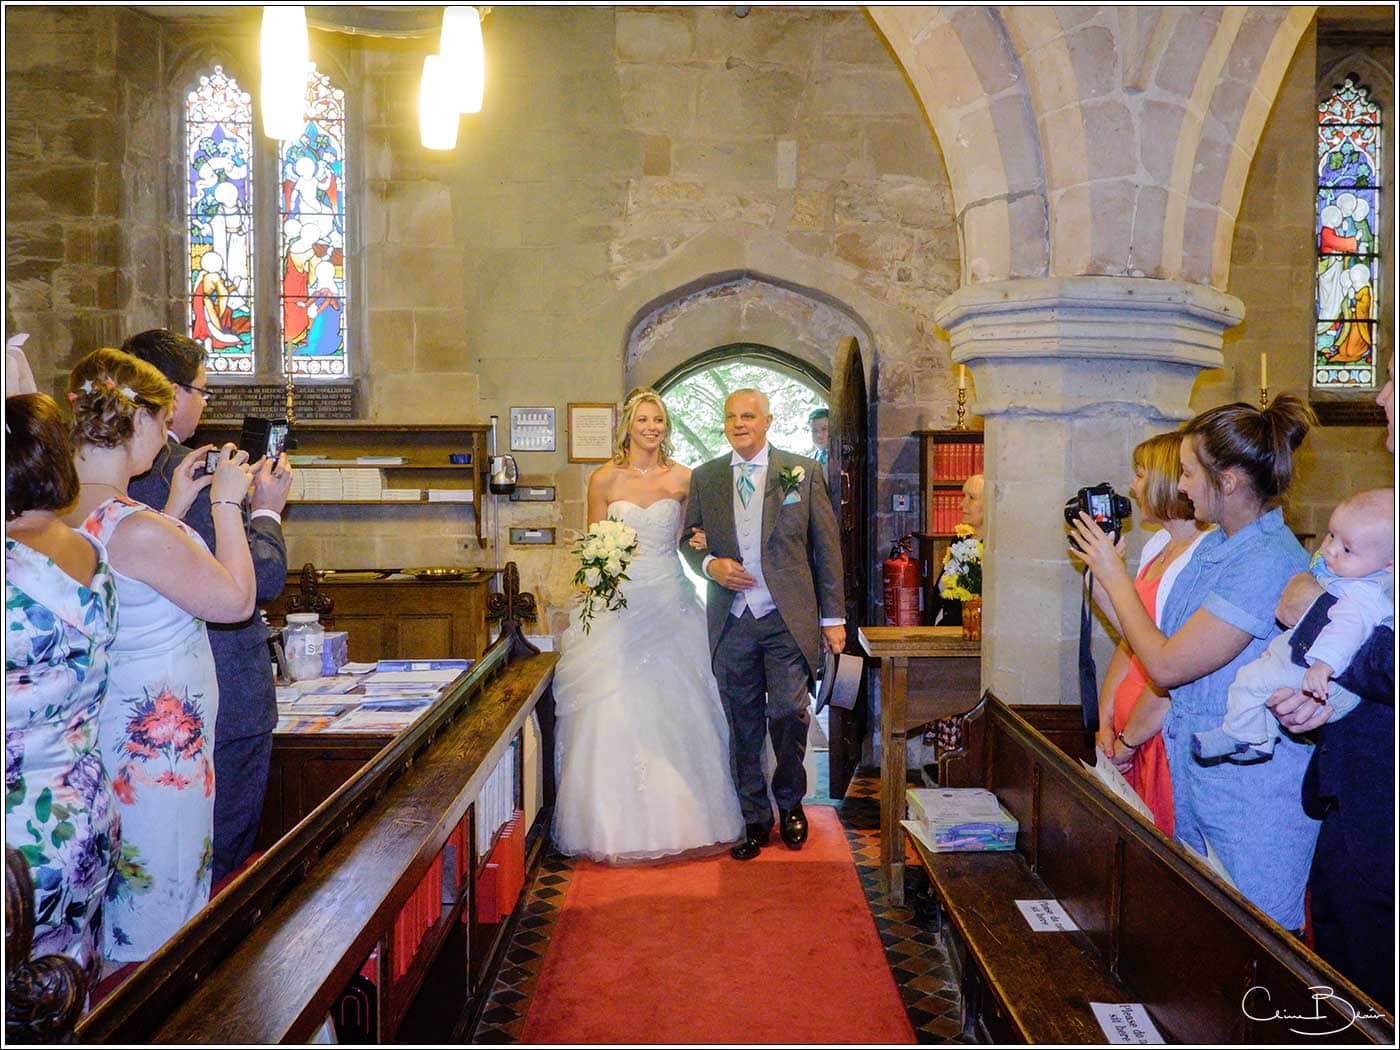 Father and bride entering the church-by Hampton manor wedding photographer Clive Blair Photography